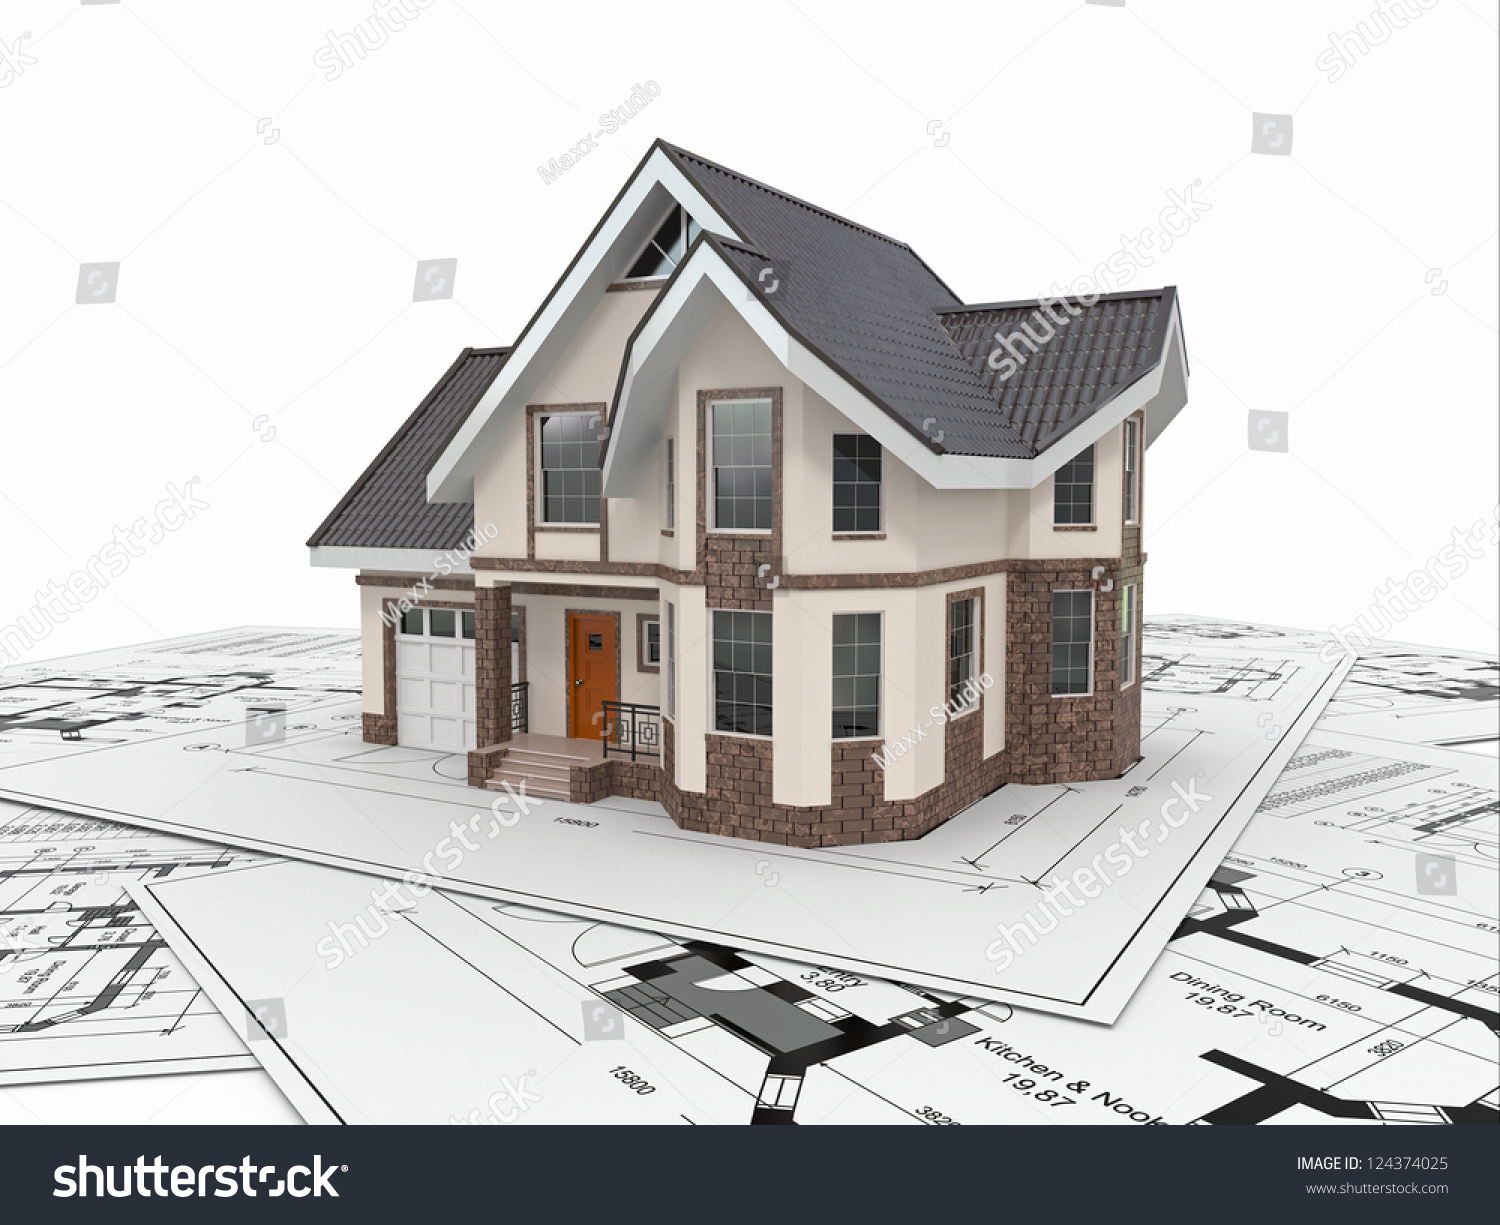 Architecture Blueprints 3d residential house tools on architect blueprints stock illustration